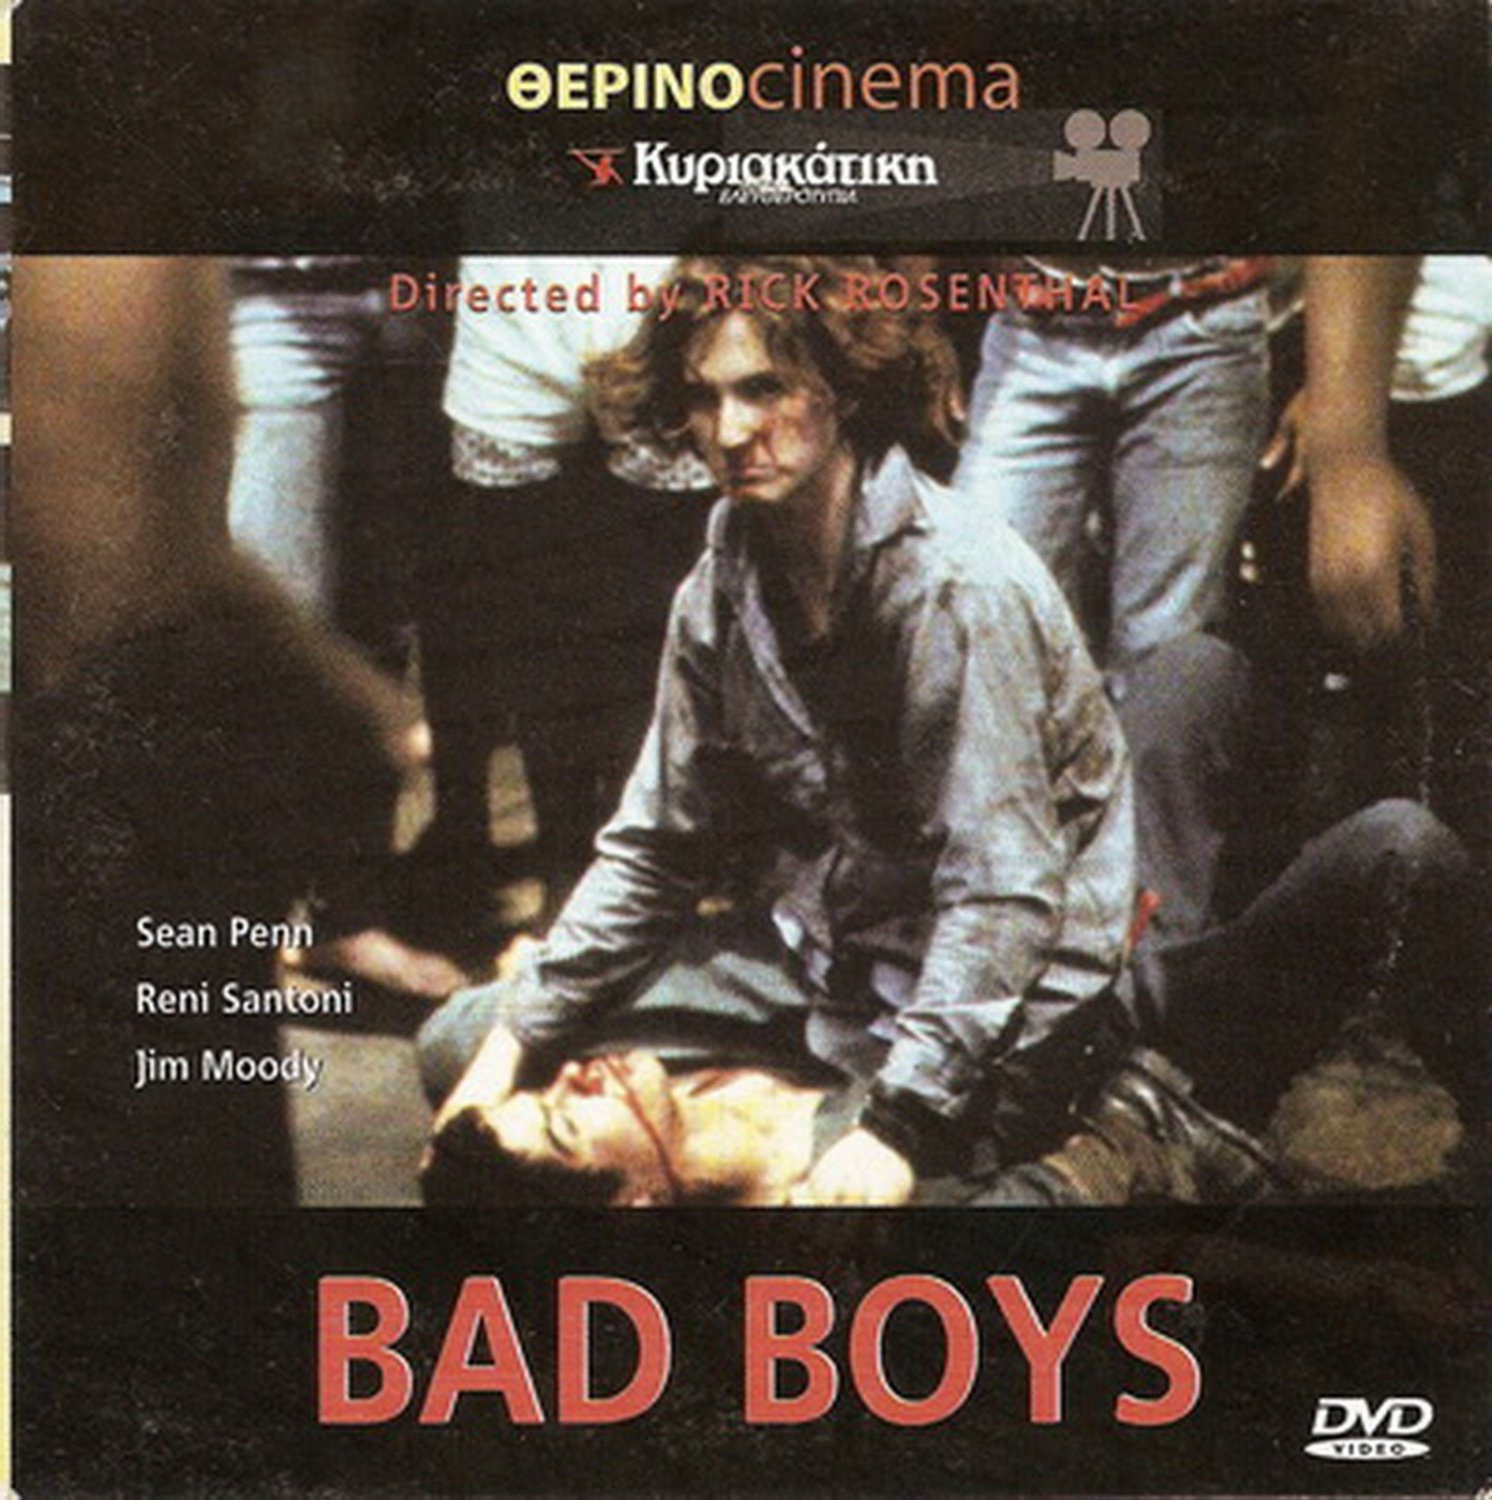 Bad Boys With Sean Penn: BAD BOYS SEAN PENN,RENI SANTONI, ESAI MORALES,ERIC GURRY